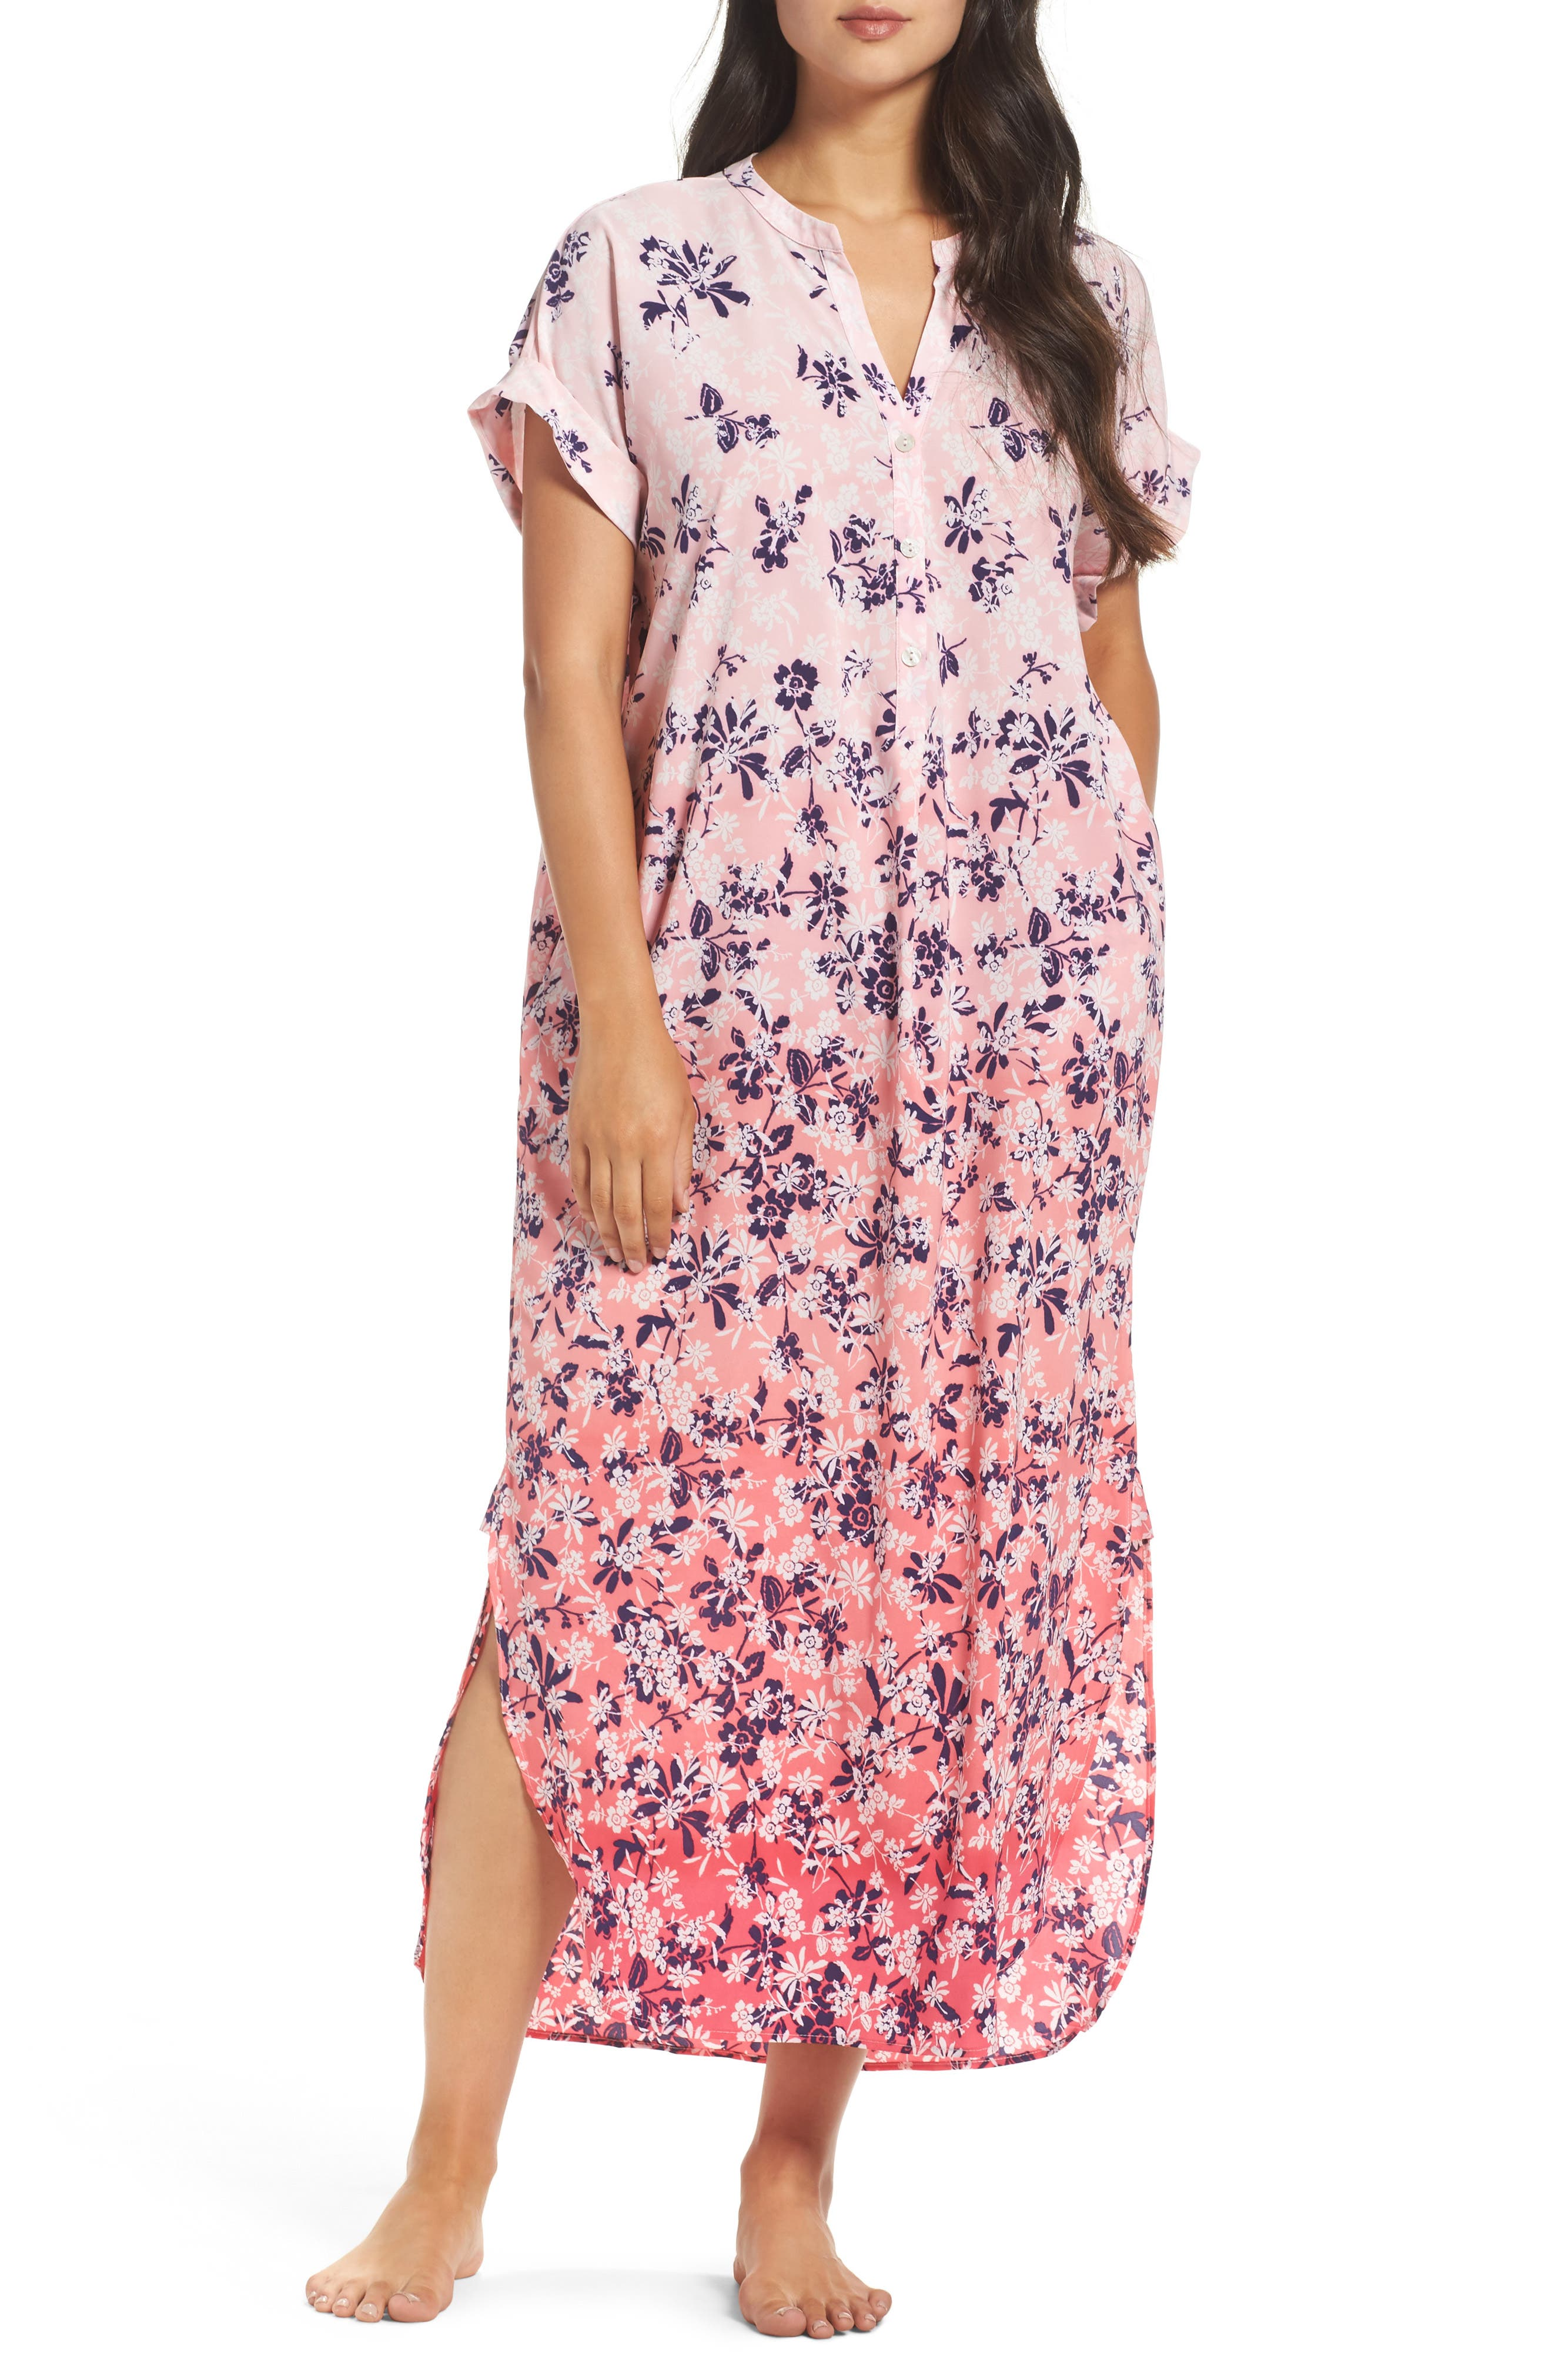 Alternate Image 1 Selected - Oscar de la Renta Sleepwear Floral Print Caftan